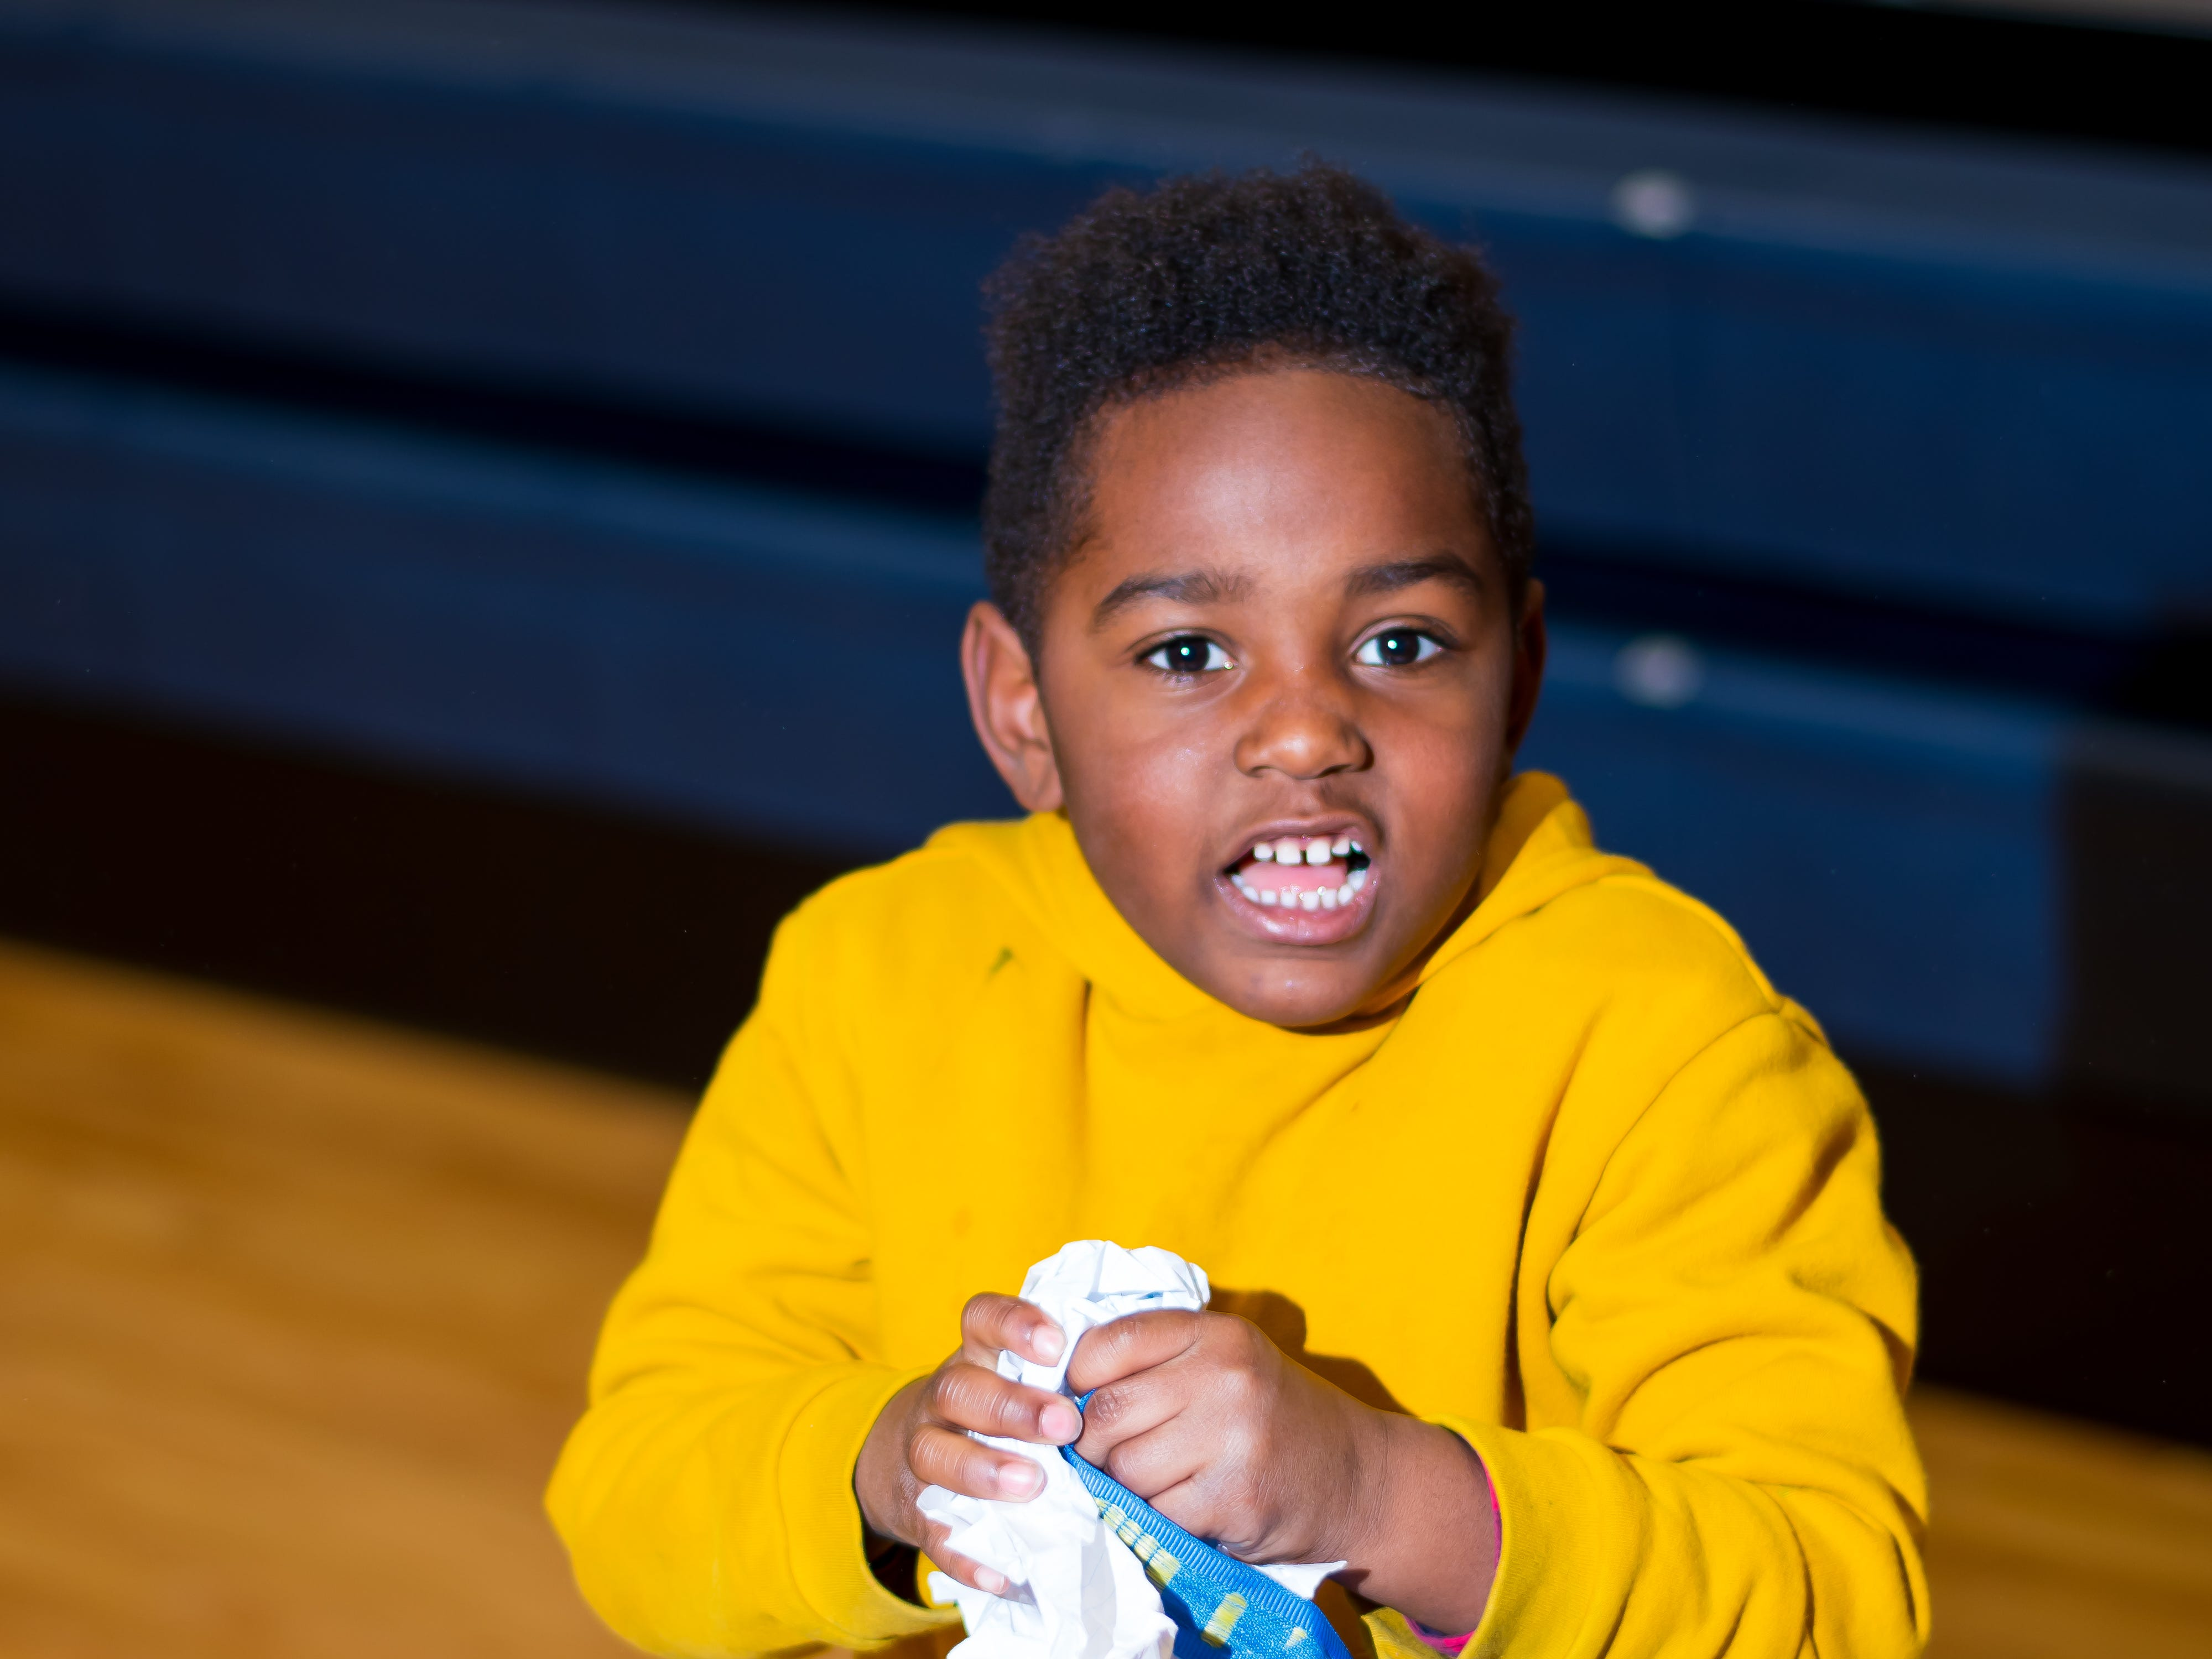 Tyshawn Clyce, 5, of Urbandale plays a snowball game on Friday, Dec. 21, 2018 at Karen Acres Elementary School in Urbandale for their winter party.